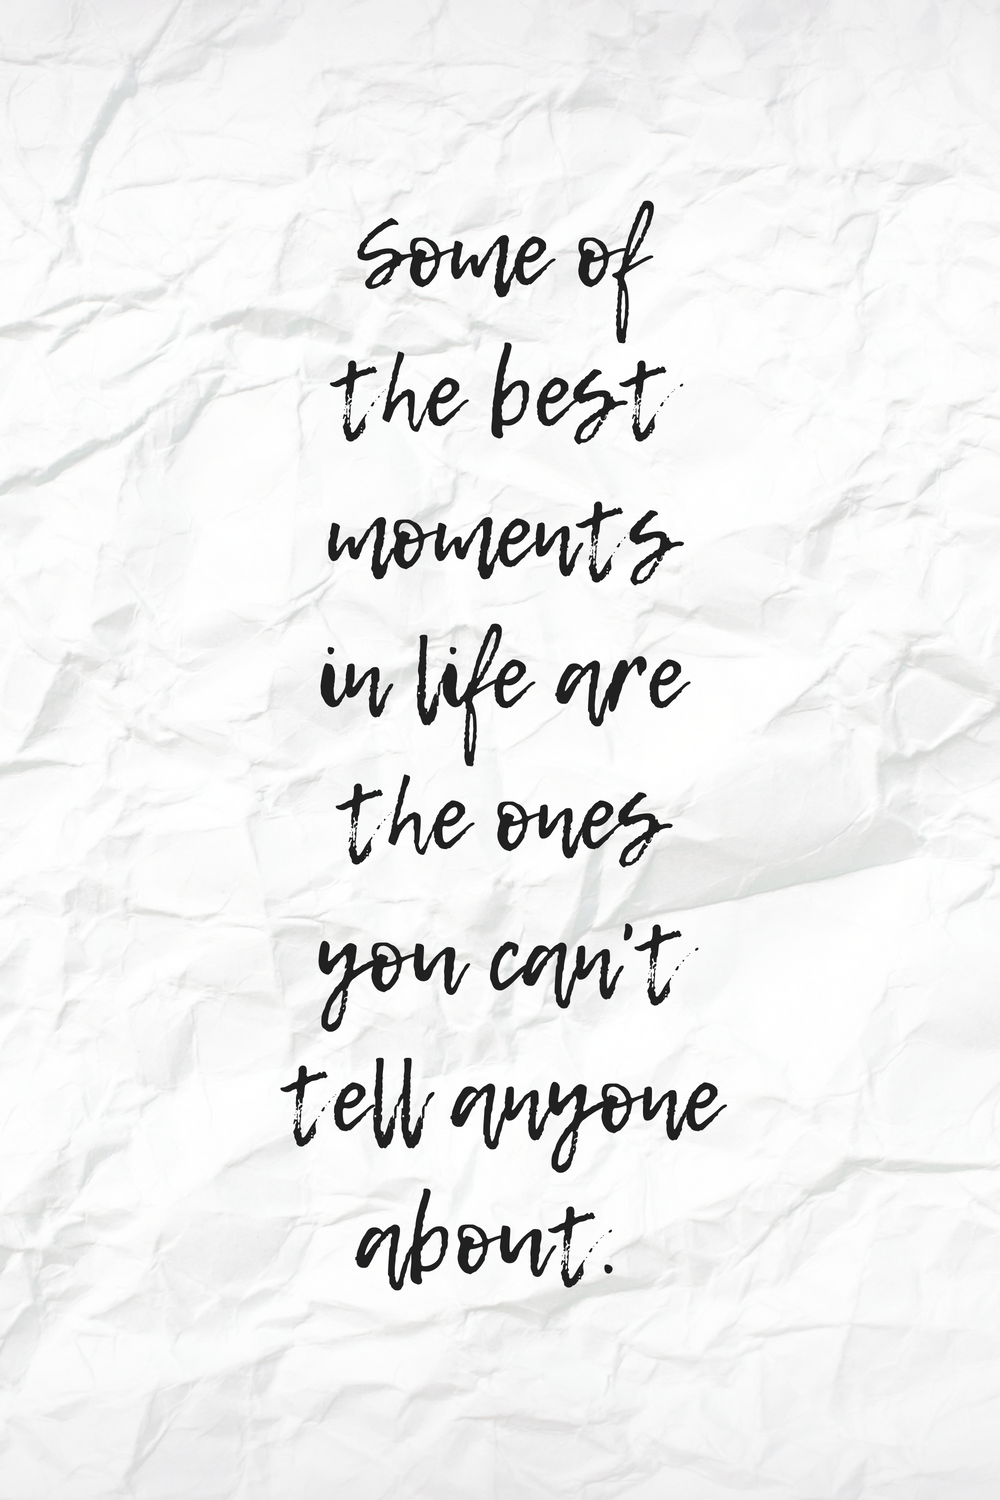 22 Super Cute Love Quotes and Sayings (with FREE Digital